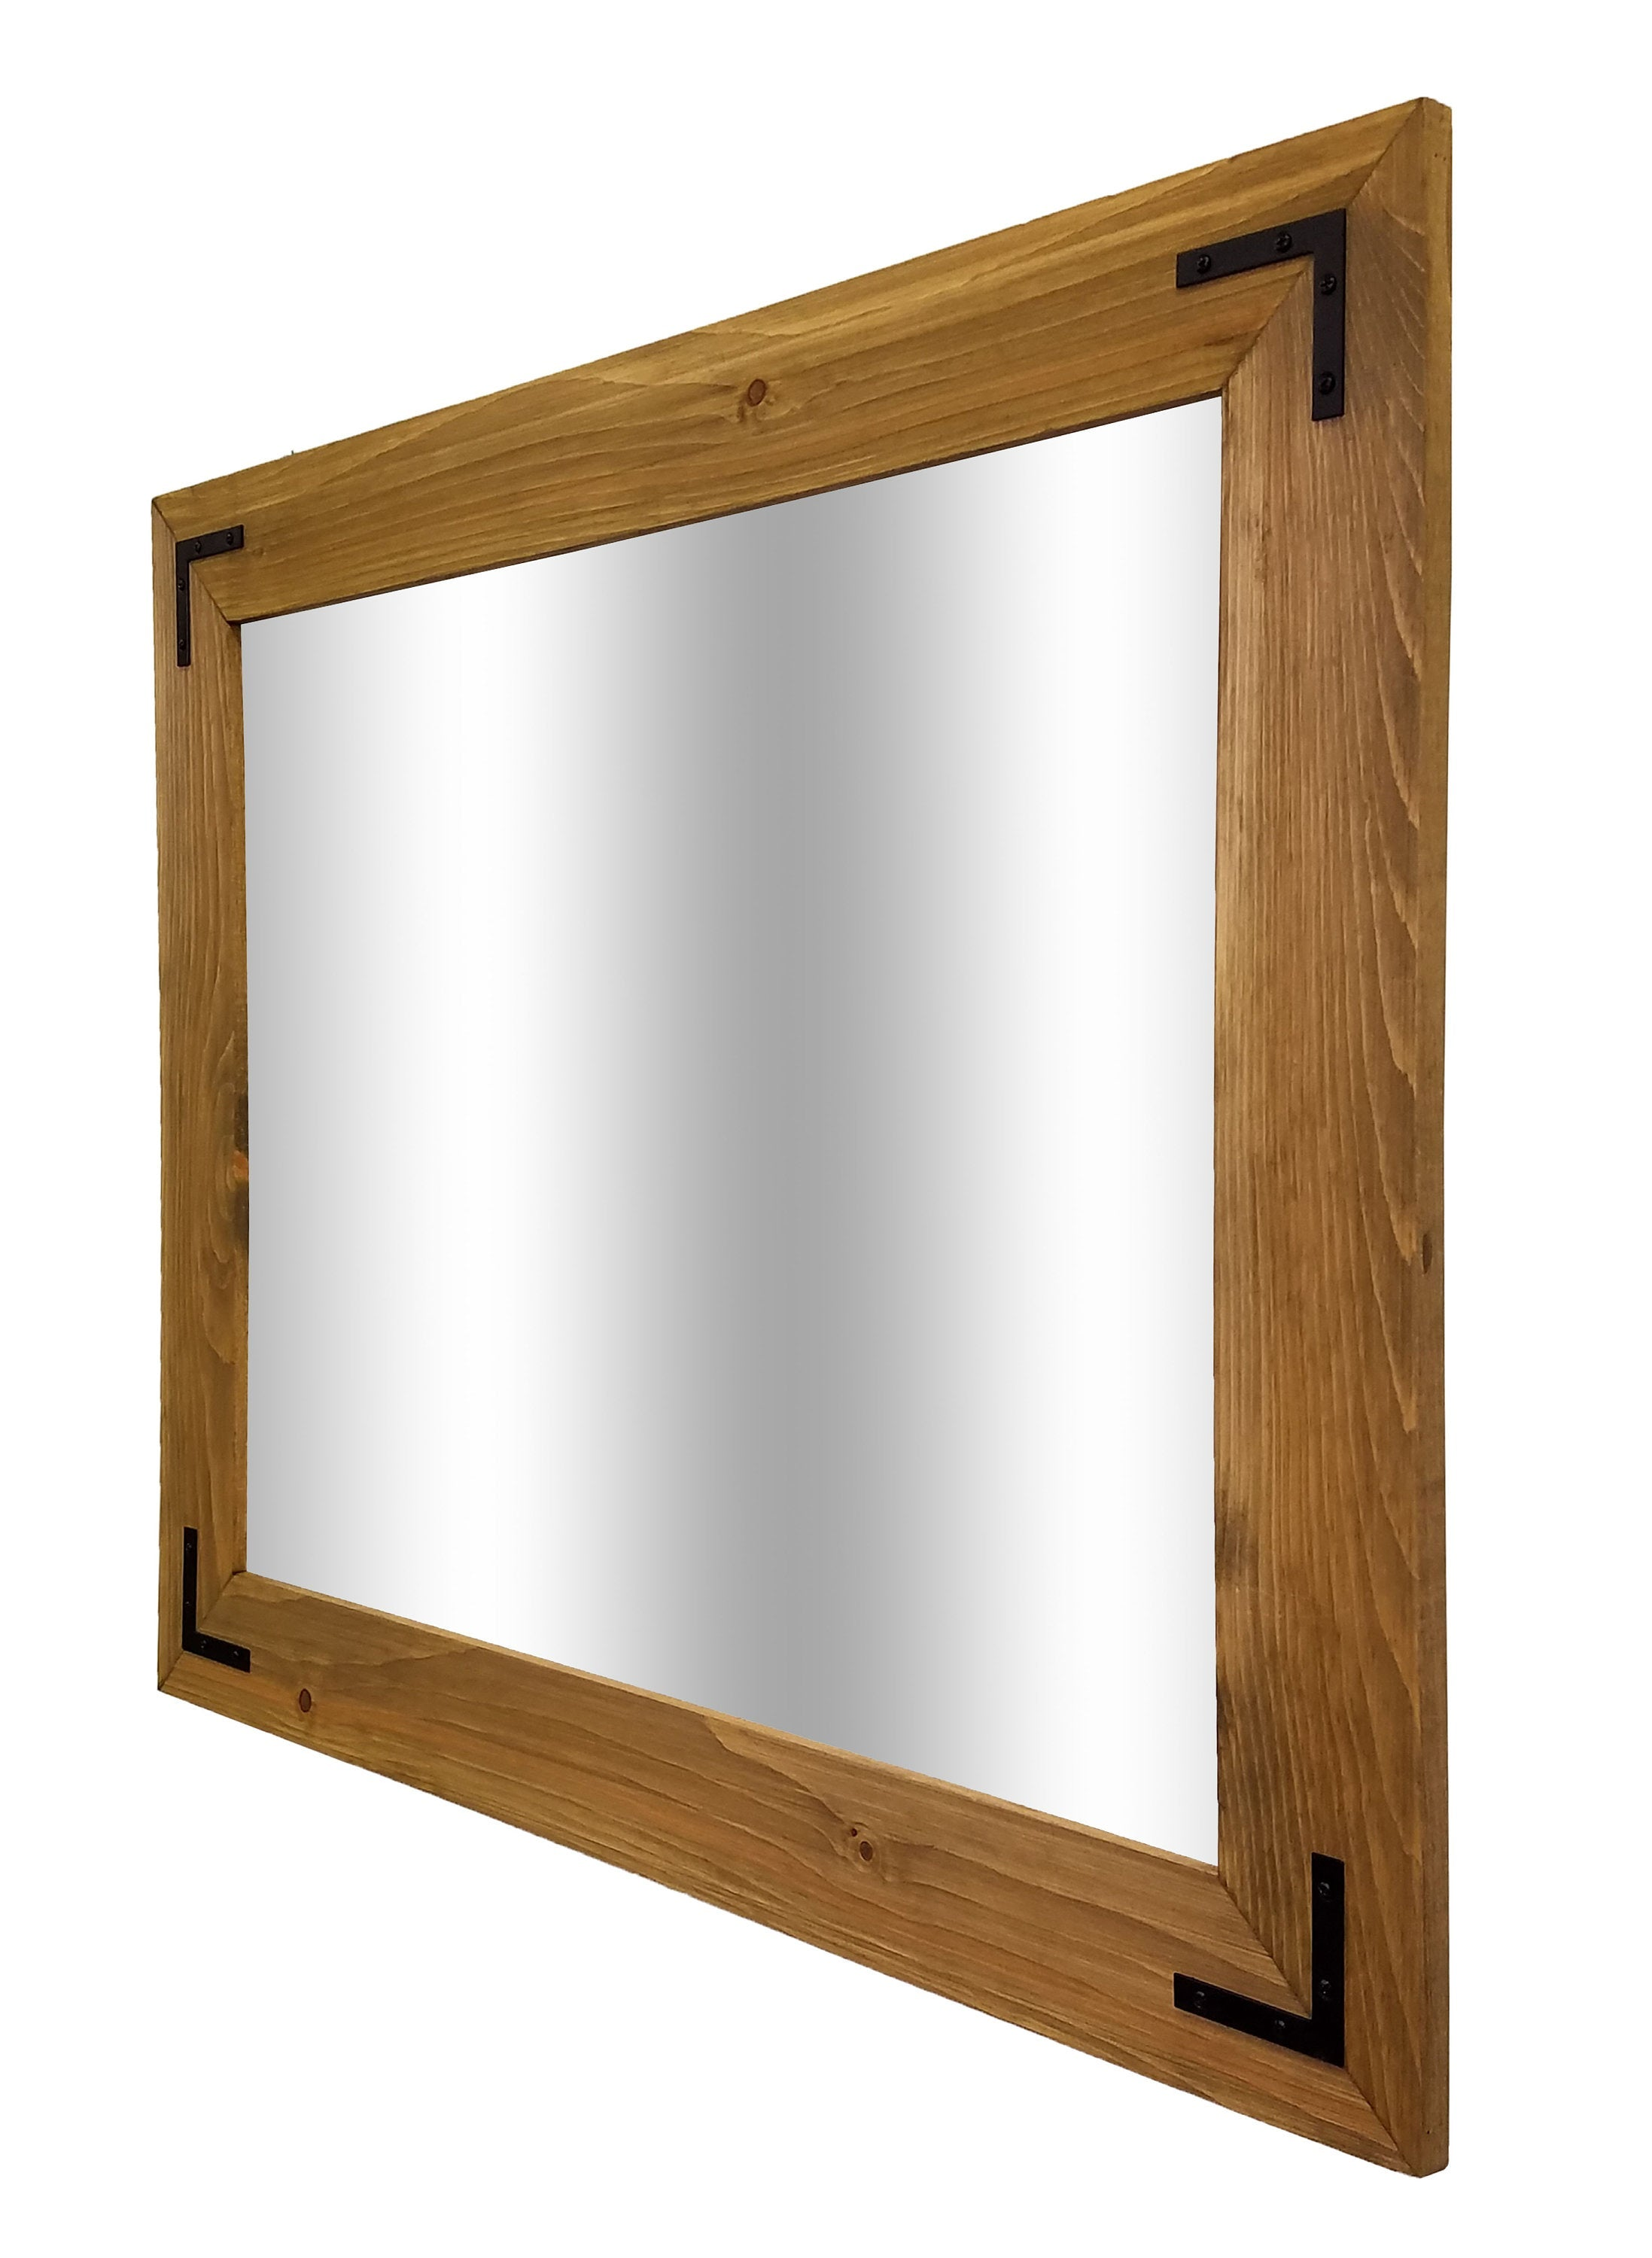 Accent Bracket Shiplap Reclaimed Wood Mirror - 20 Stain Colors - Renewed Decor & Storage